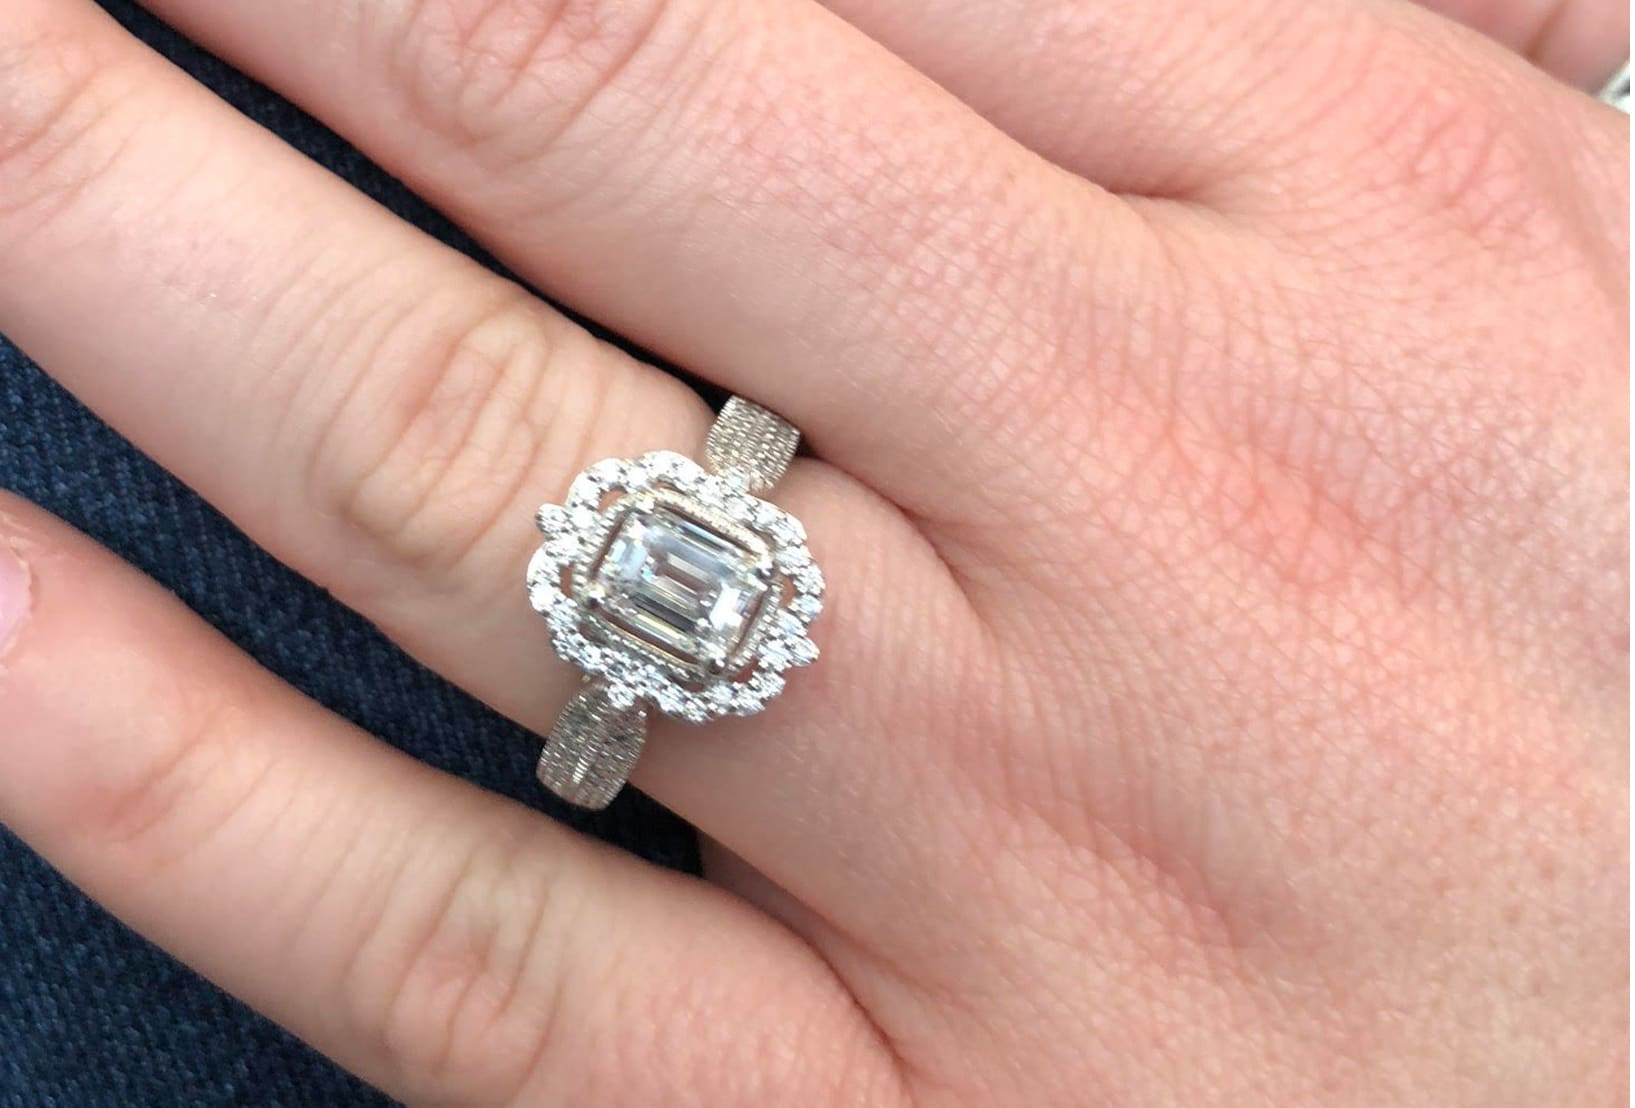 Close up image of a custom designed engagement ring